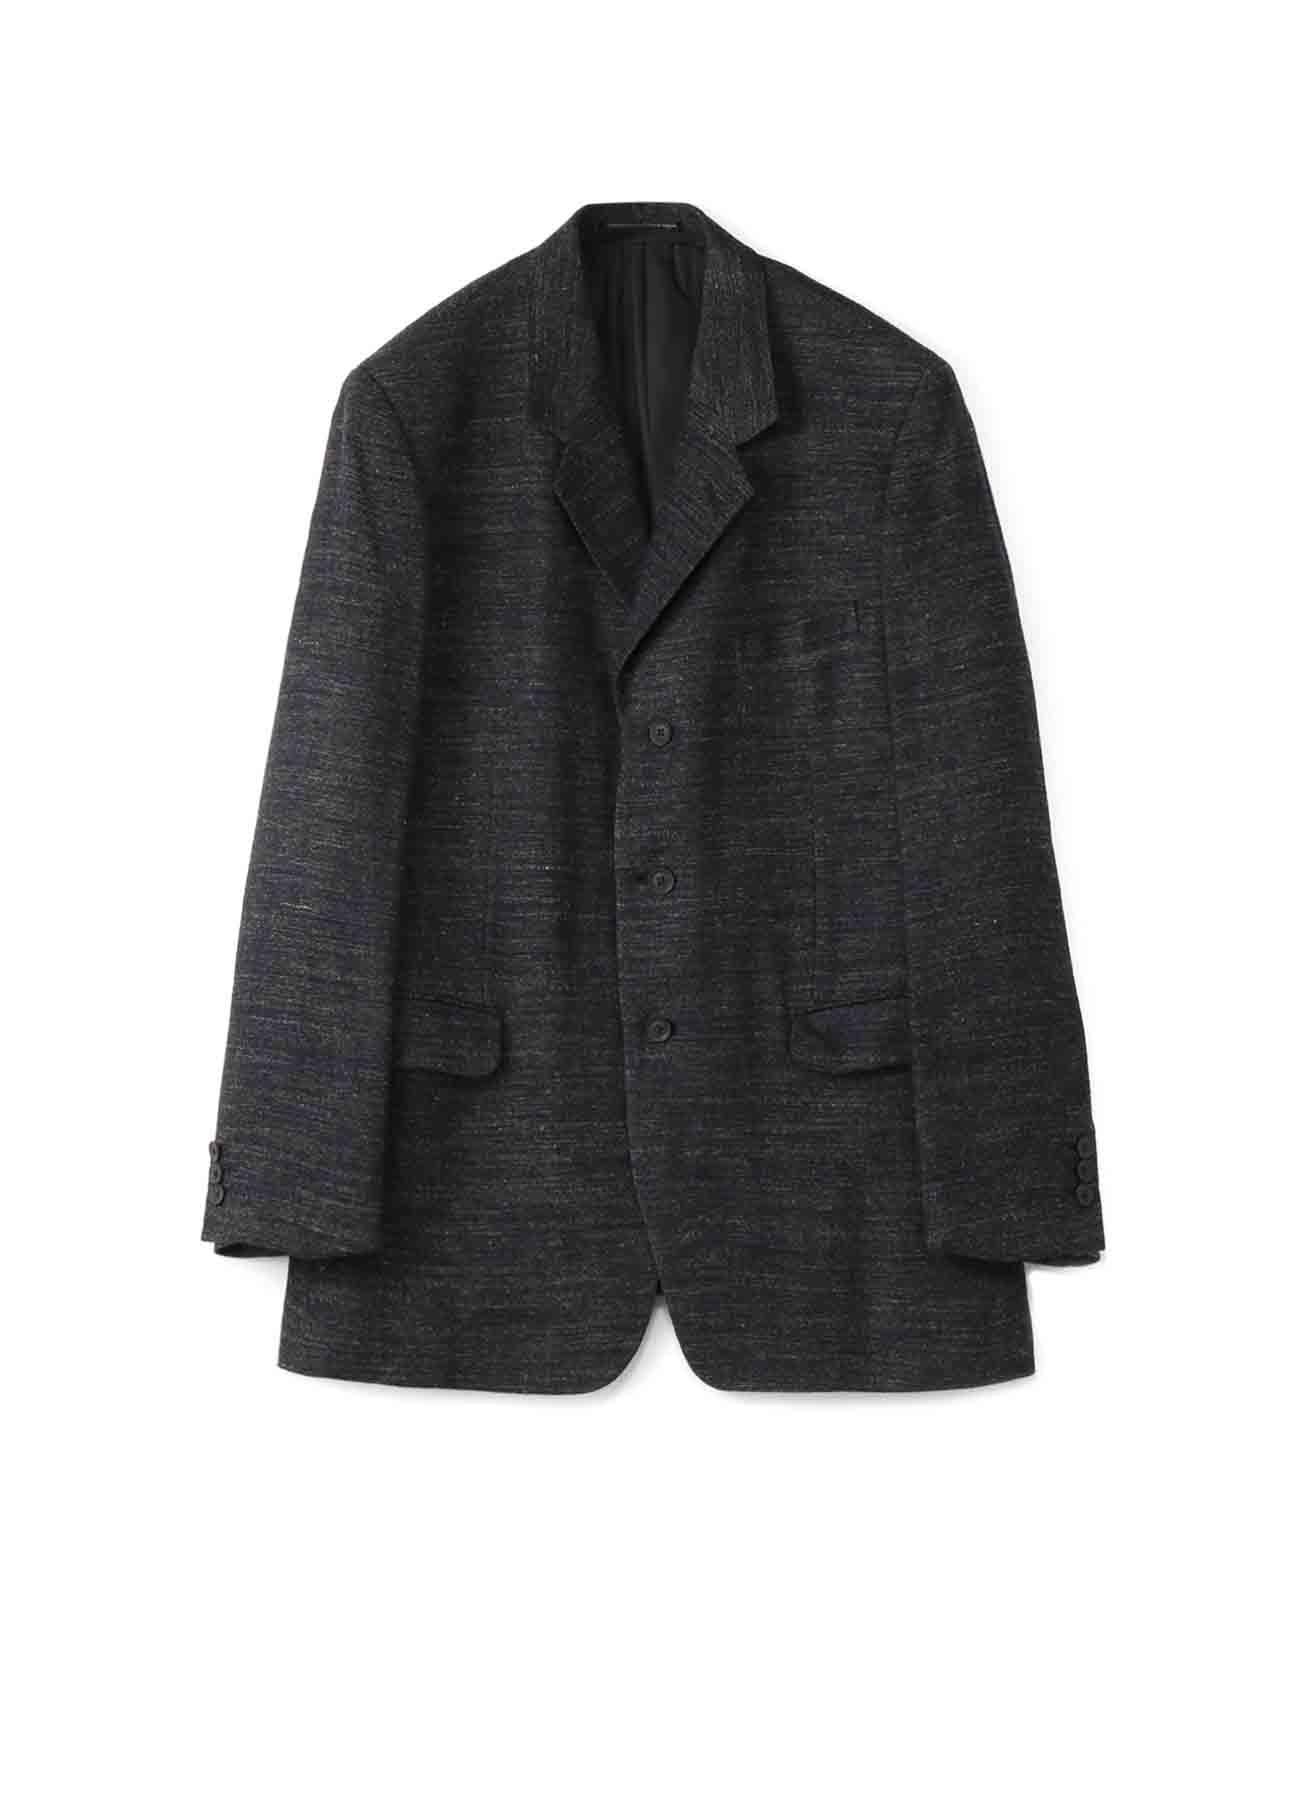 COSTUME D'HOMME WOOL/LINEN TWILL 3BUTTON SINGLE JACKET